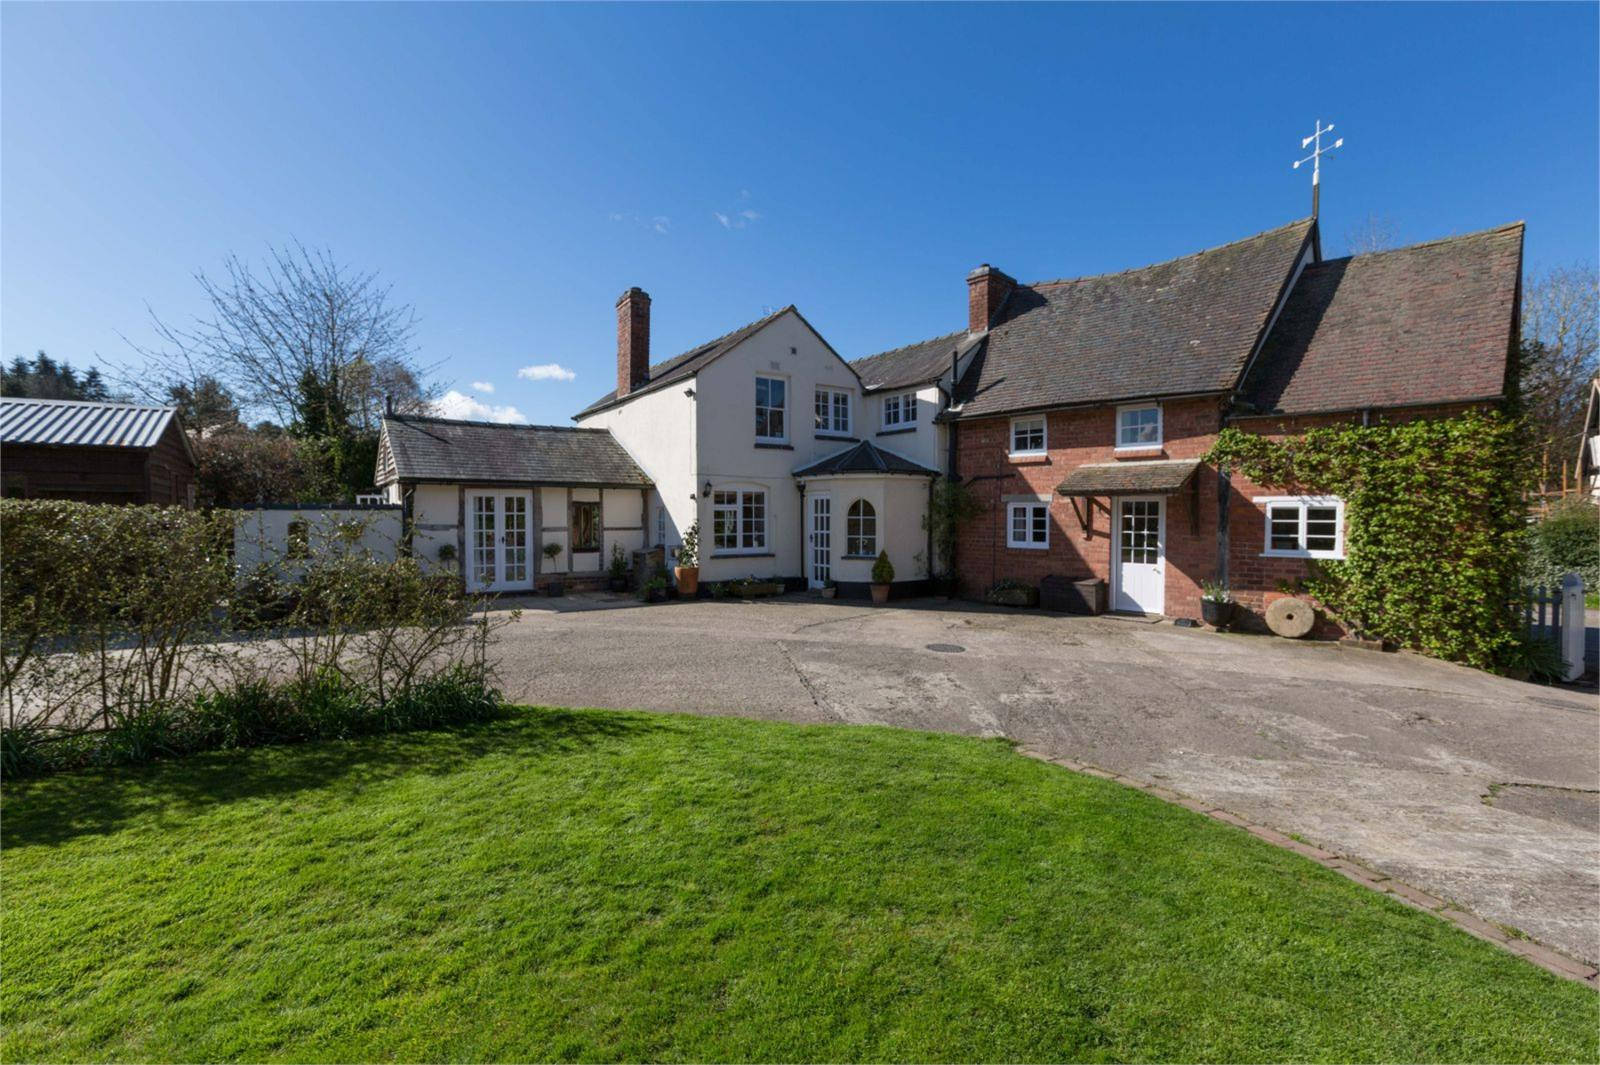 4 Bedrooms Detached House for sale in Ford House, Millbrook Way, Orleton, Ludlow, Herefordshire, SY8